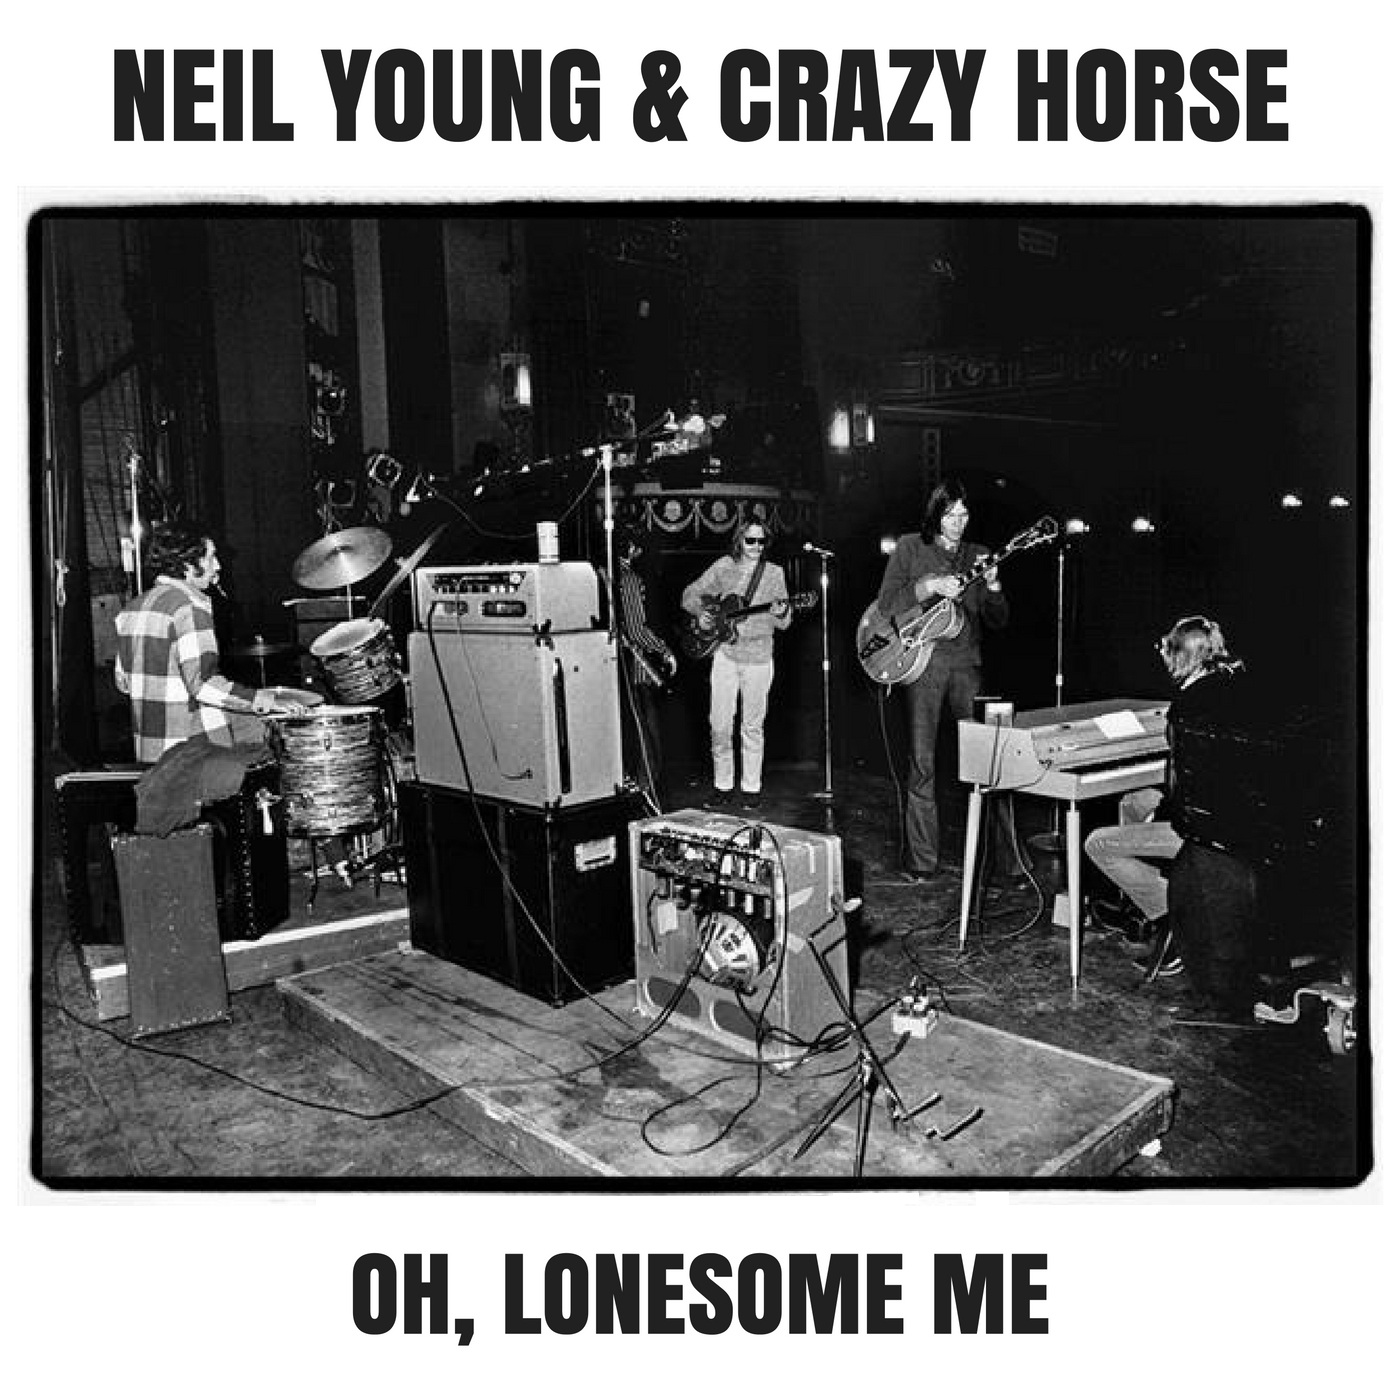 The Reconstructor: Neil Young & Crazy Horse - Oh, Lonesome